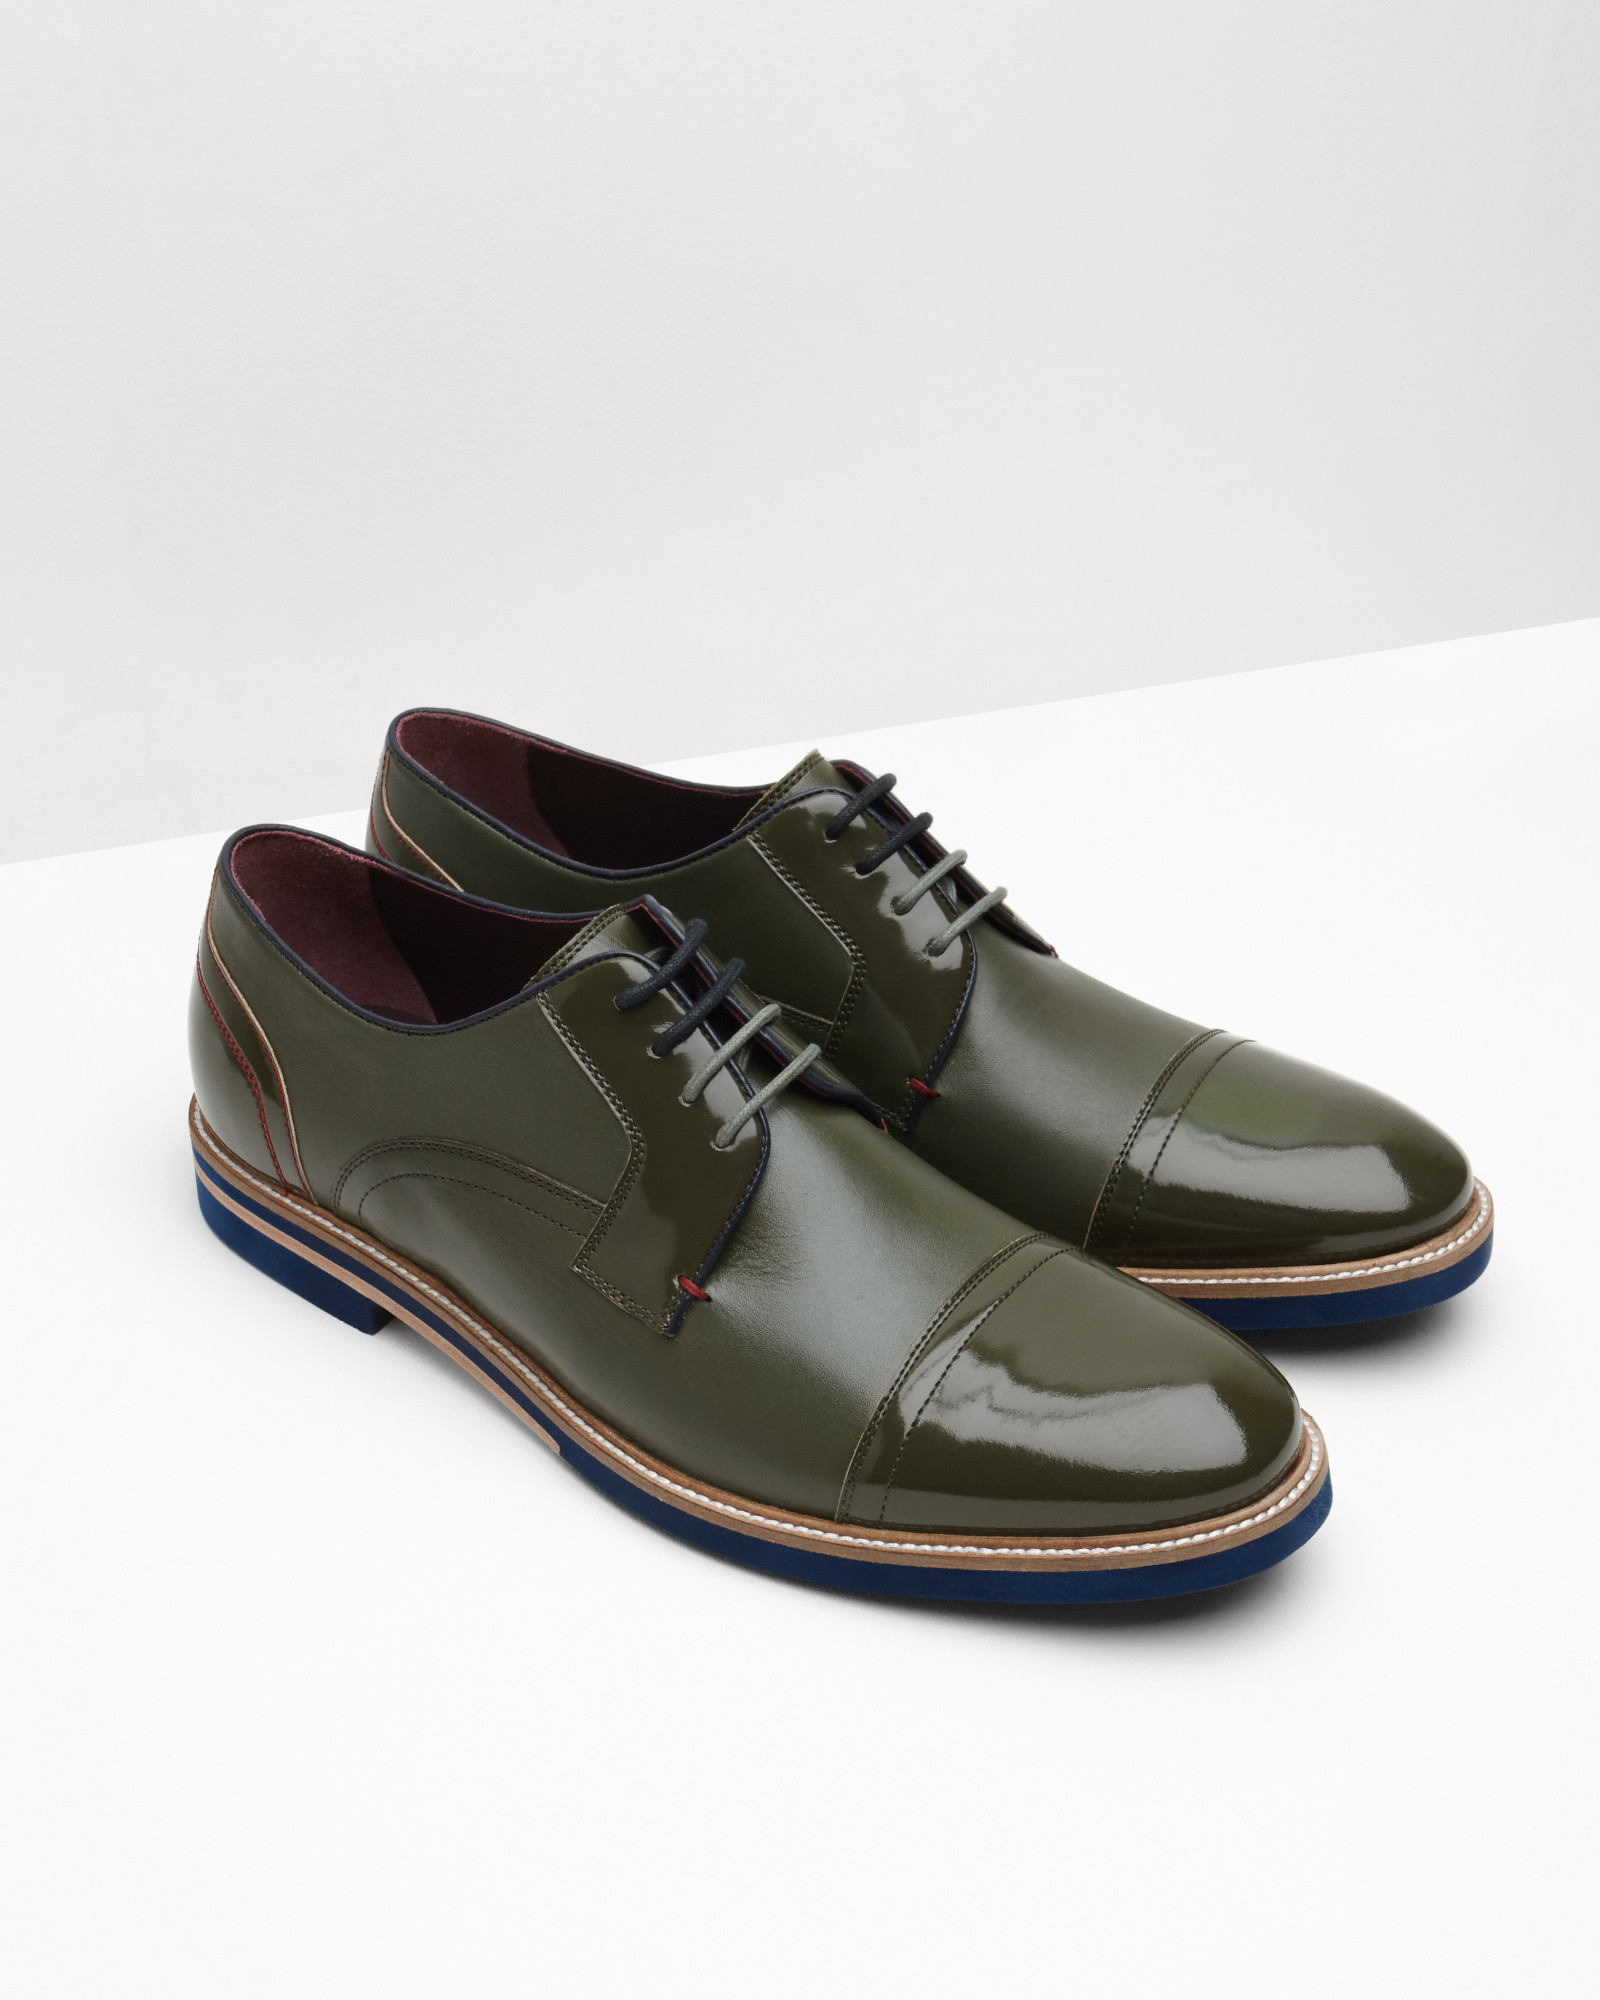 e302767ef Lyst - Ted Baker High-shine Leather Derby Brogues in Green for Men